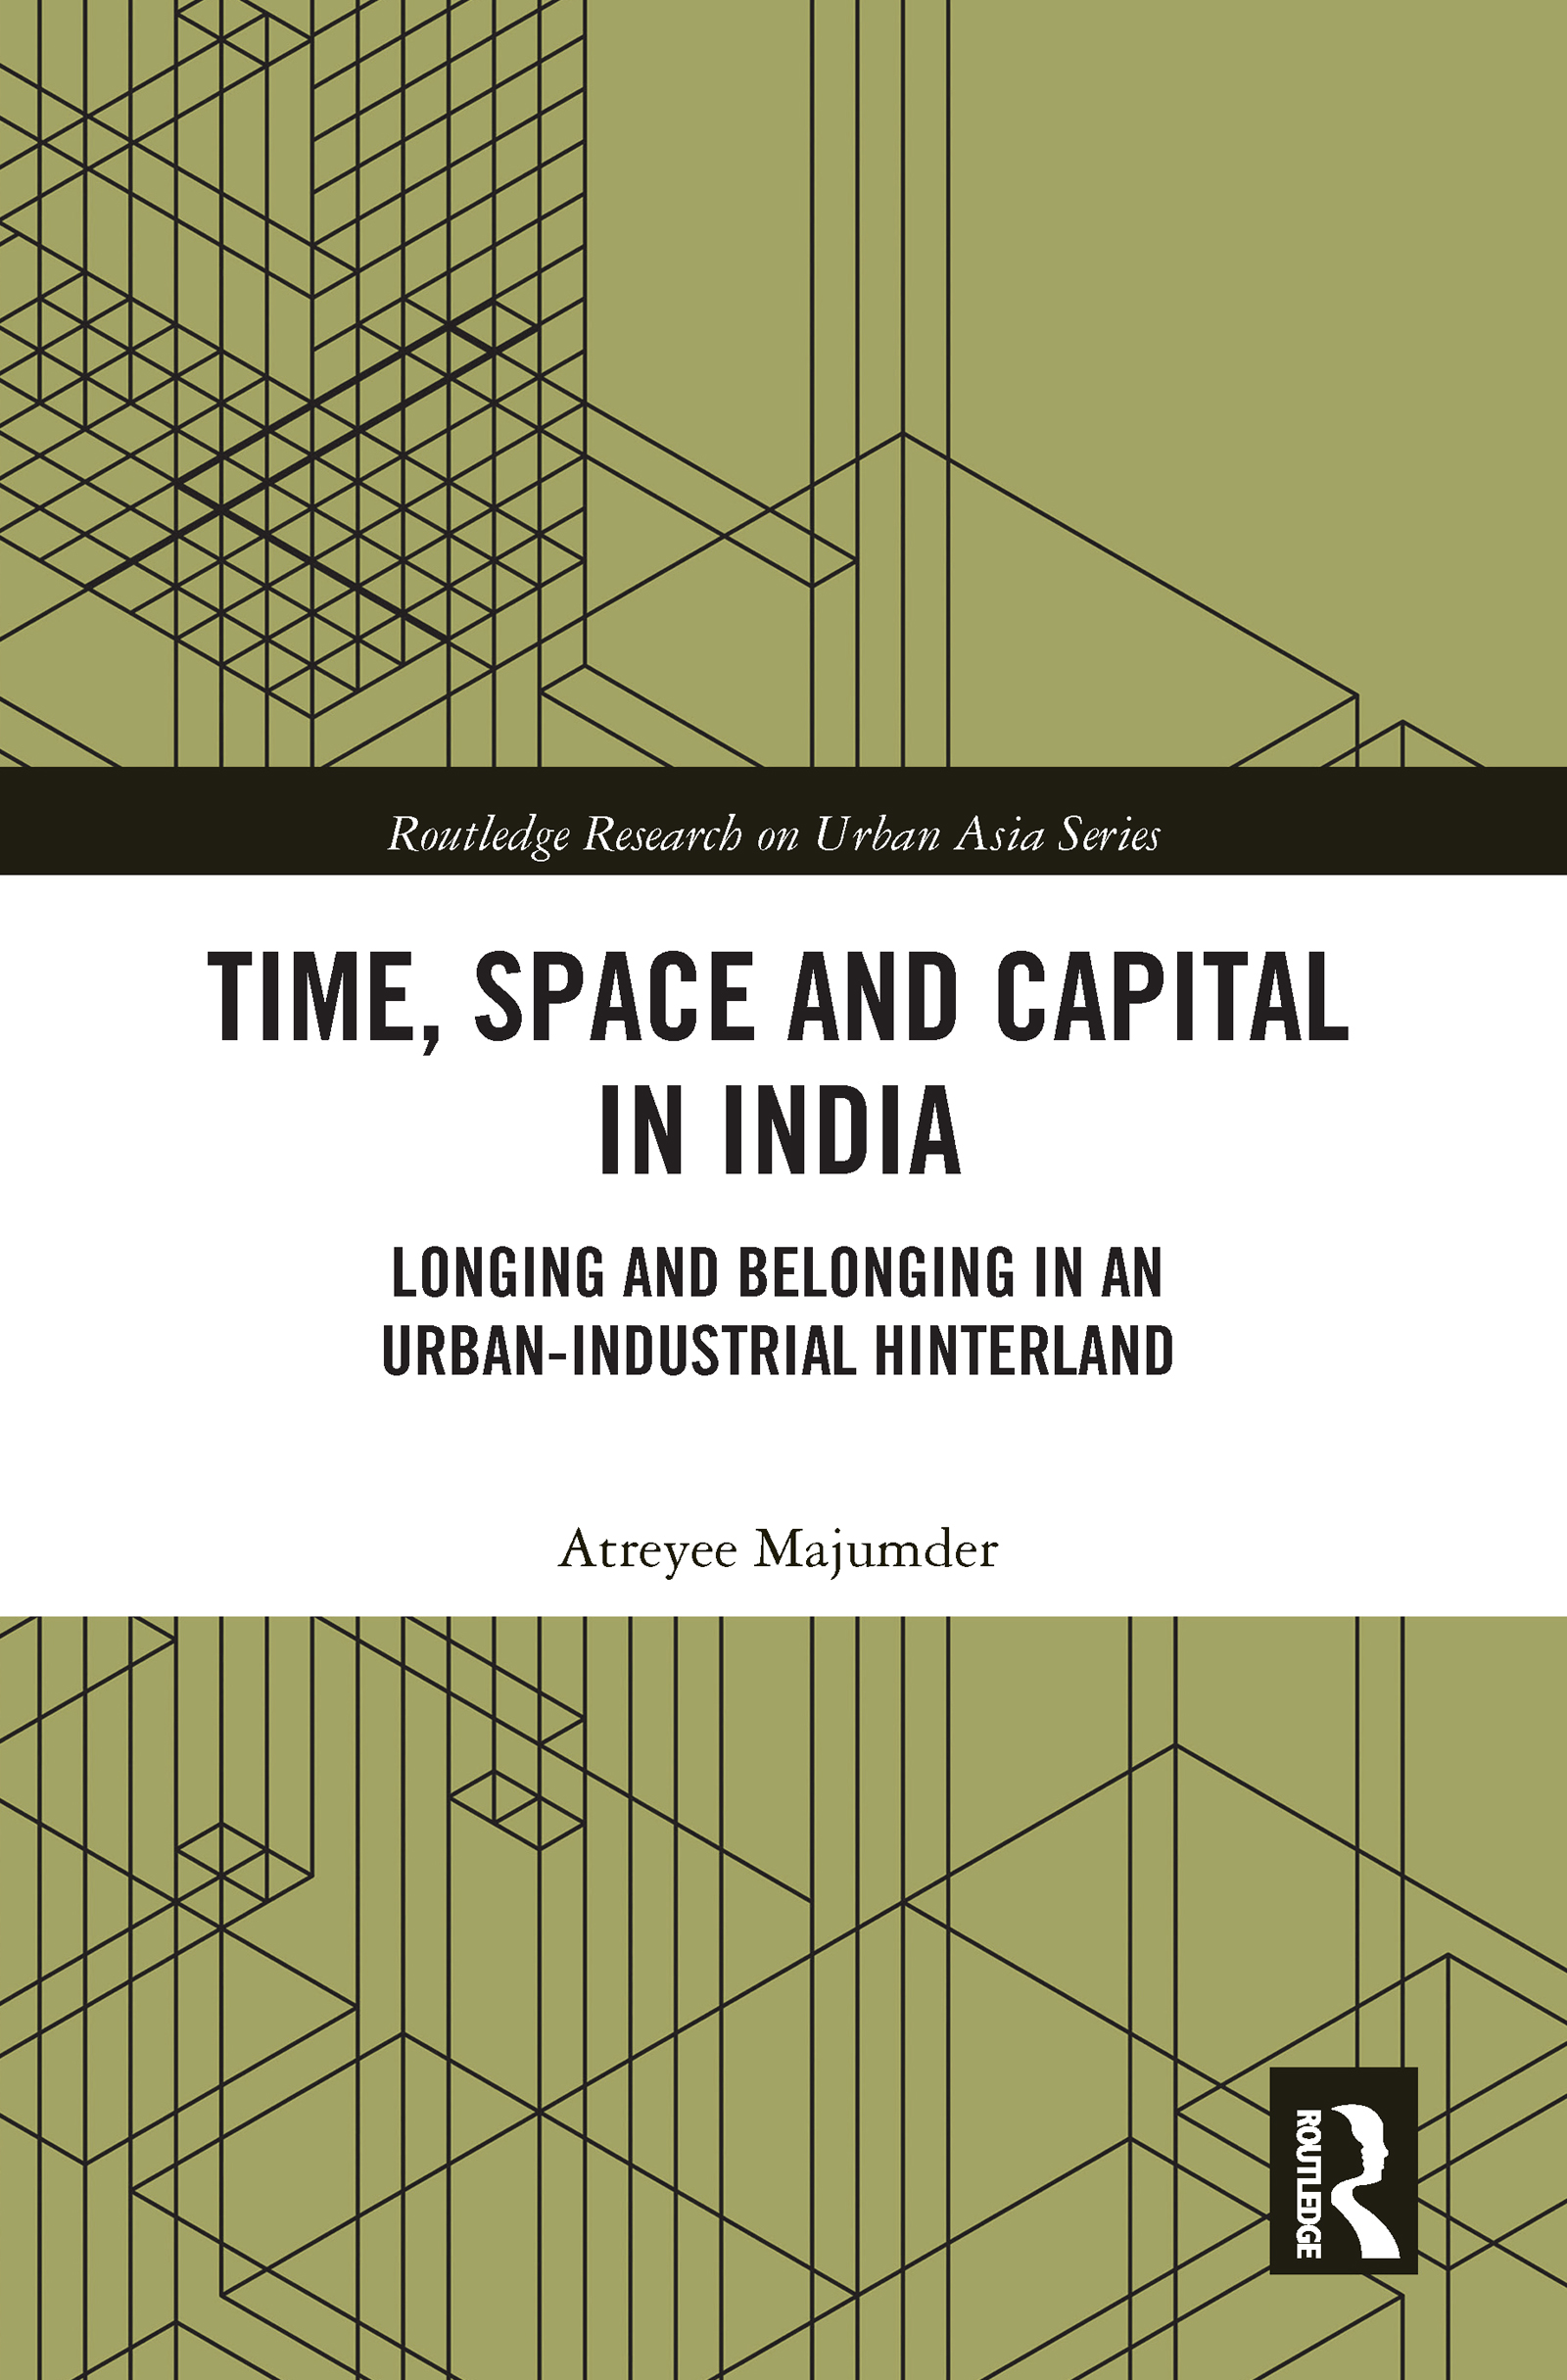 Time, Space and Capital in India